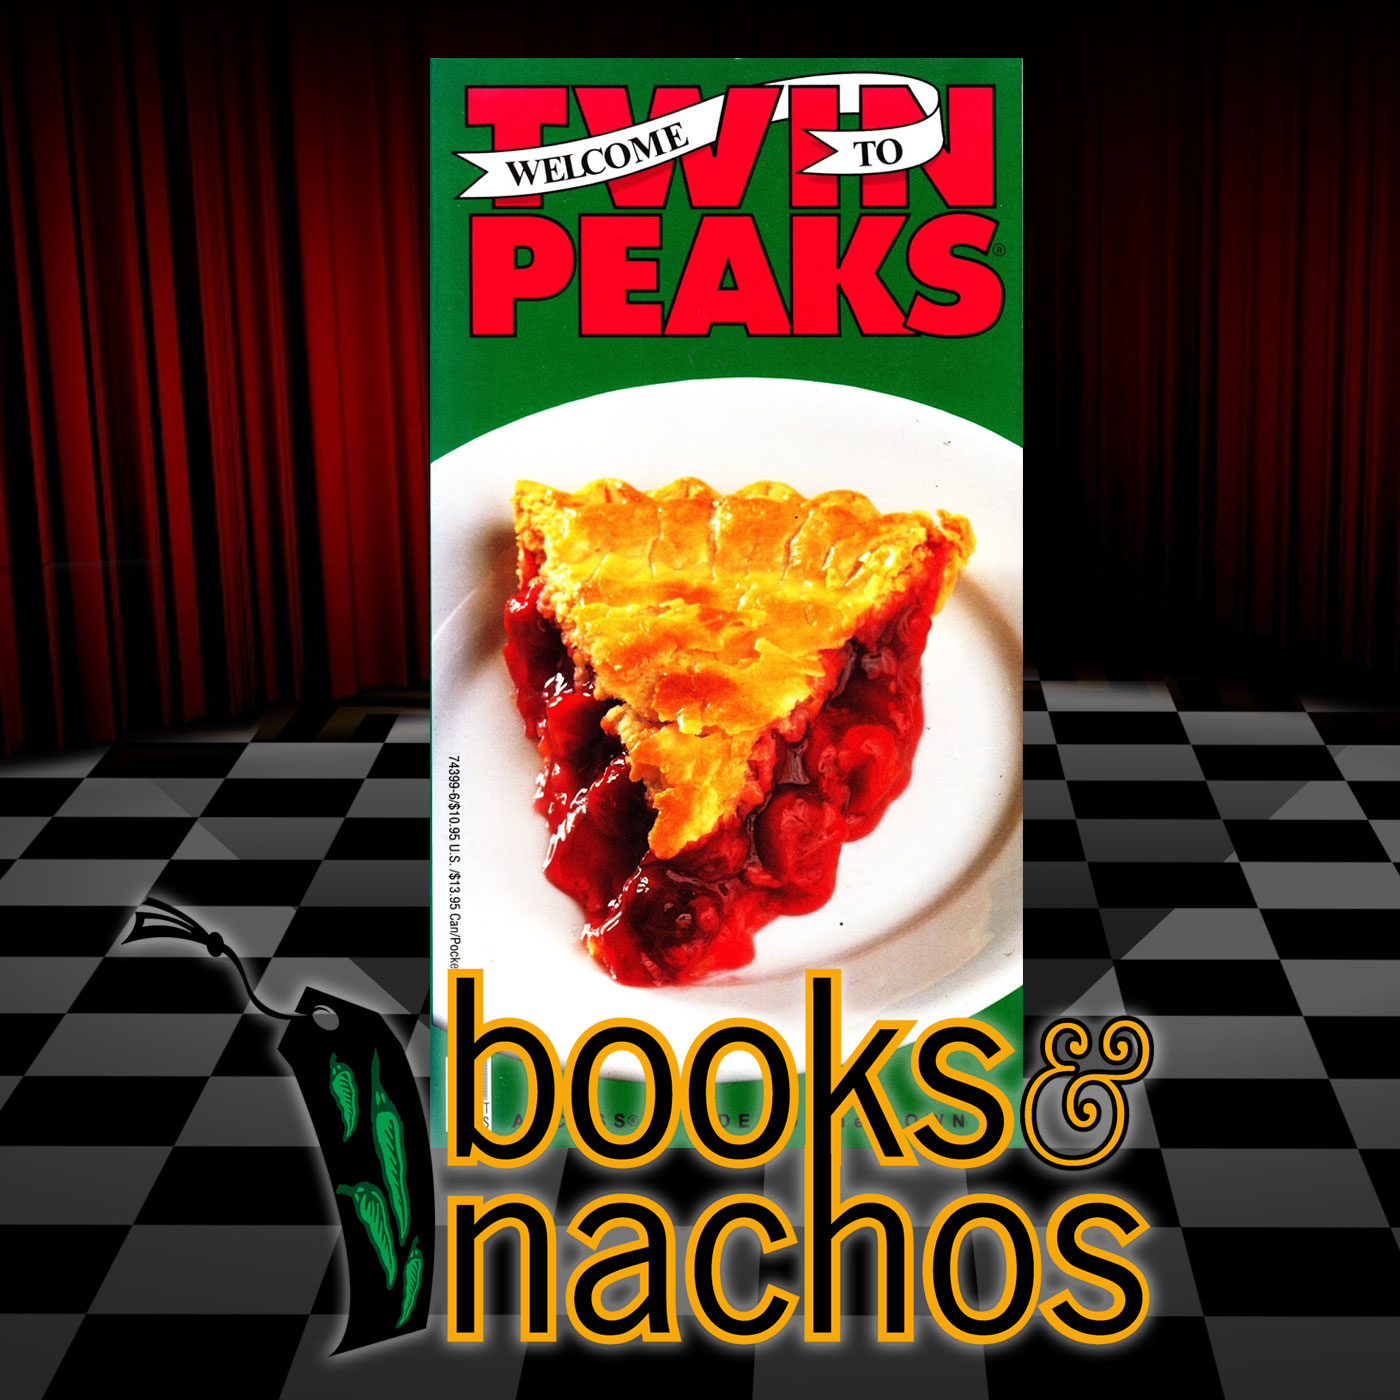 Welcome to Twin Peaks: Access Guide to the Town